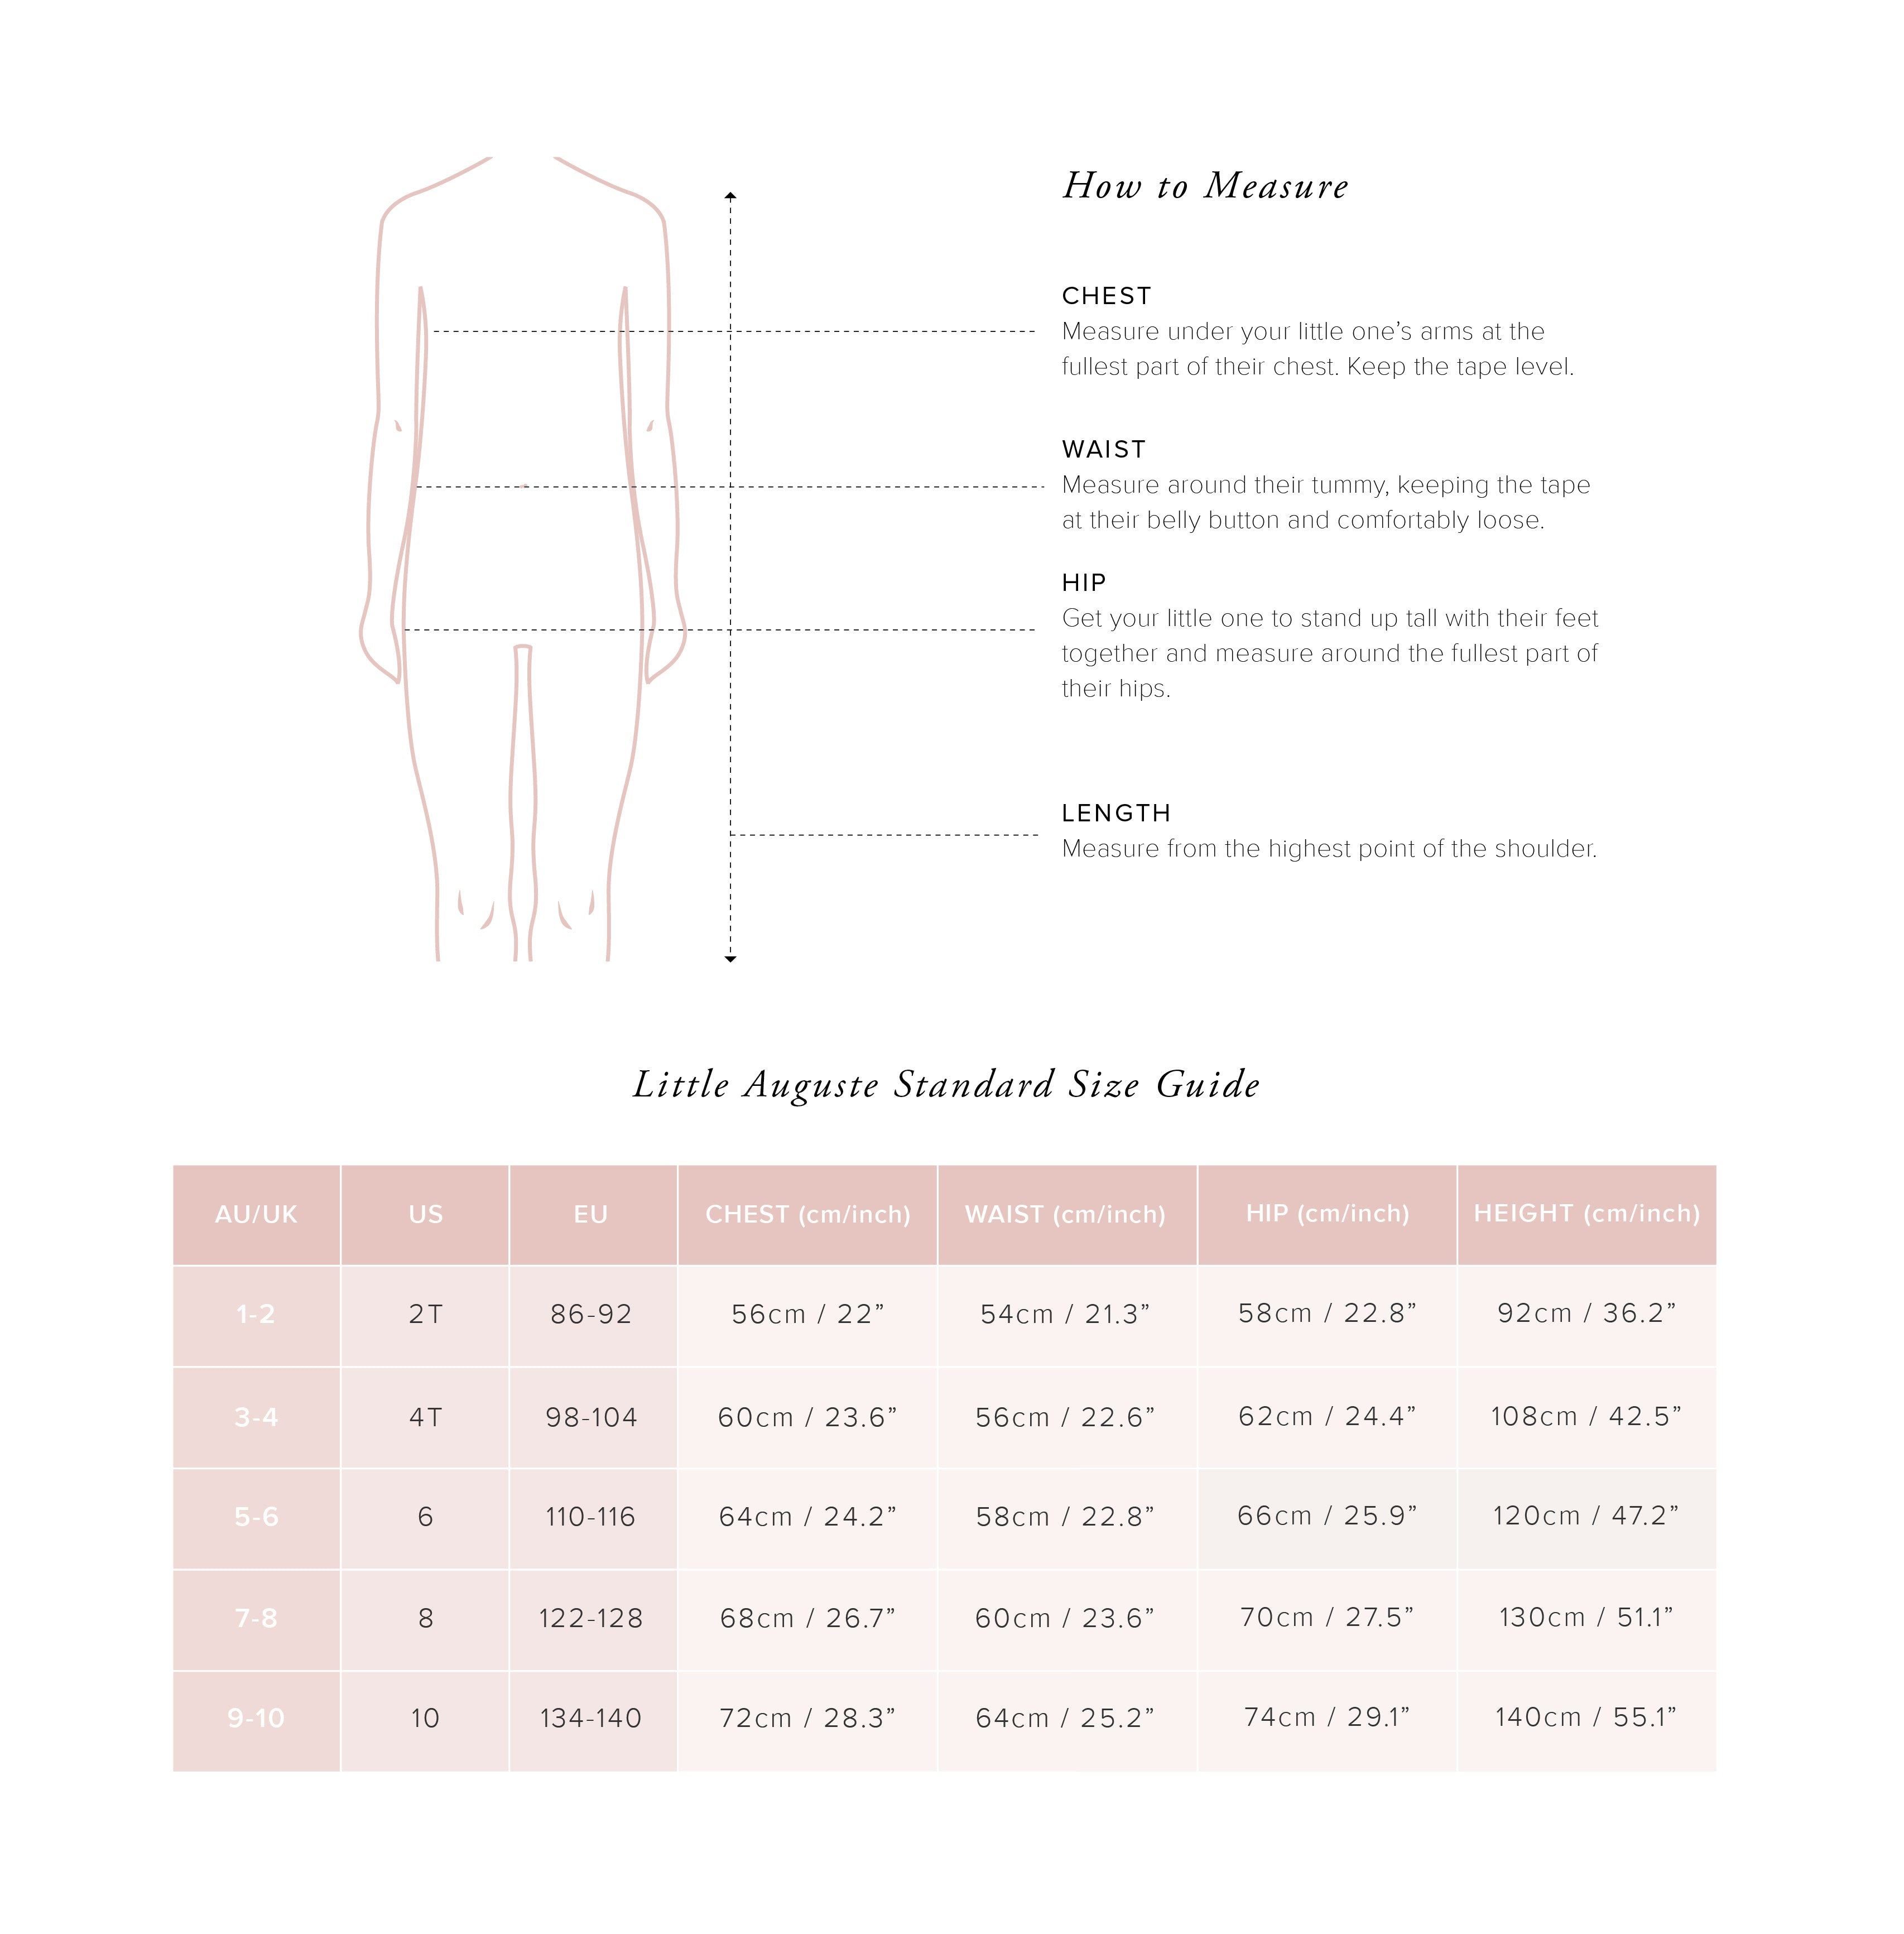 Little Auguste Size Guide - Little Dresses